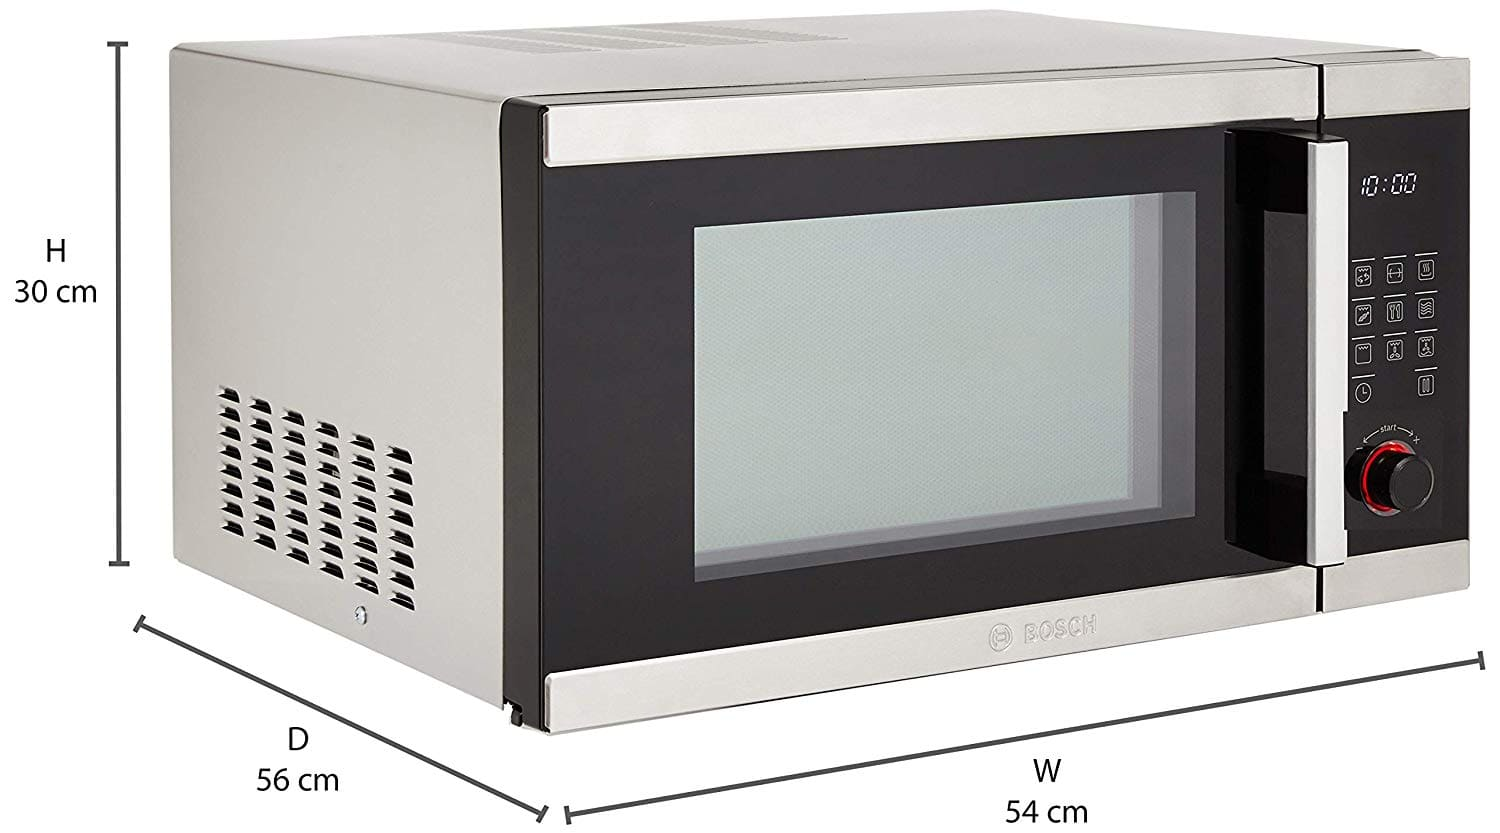 Bosch 32 L Convection Microwave Oven